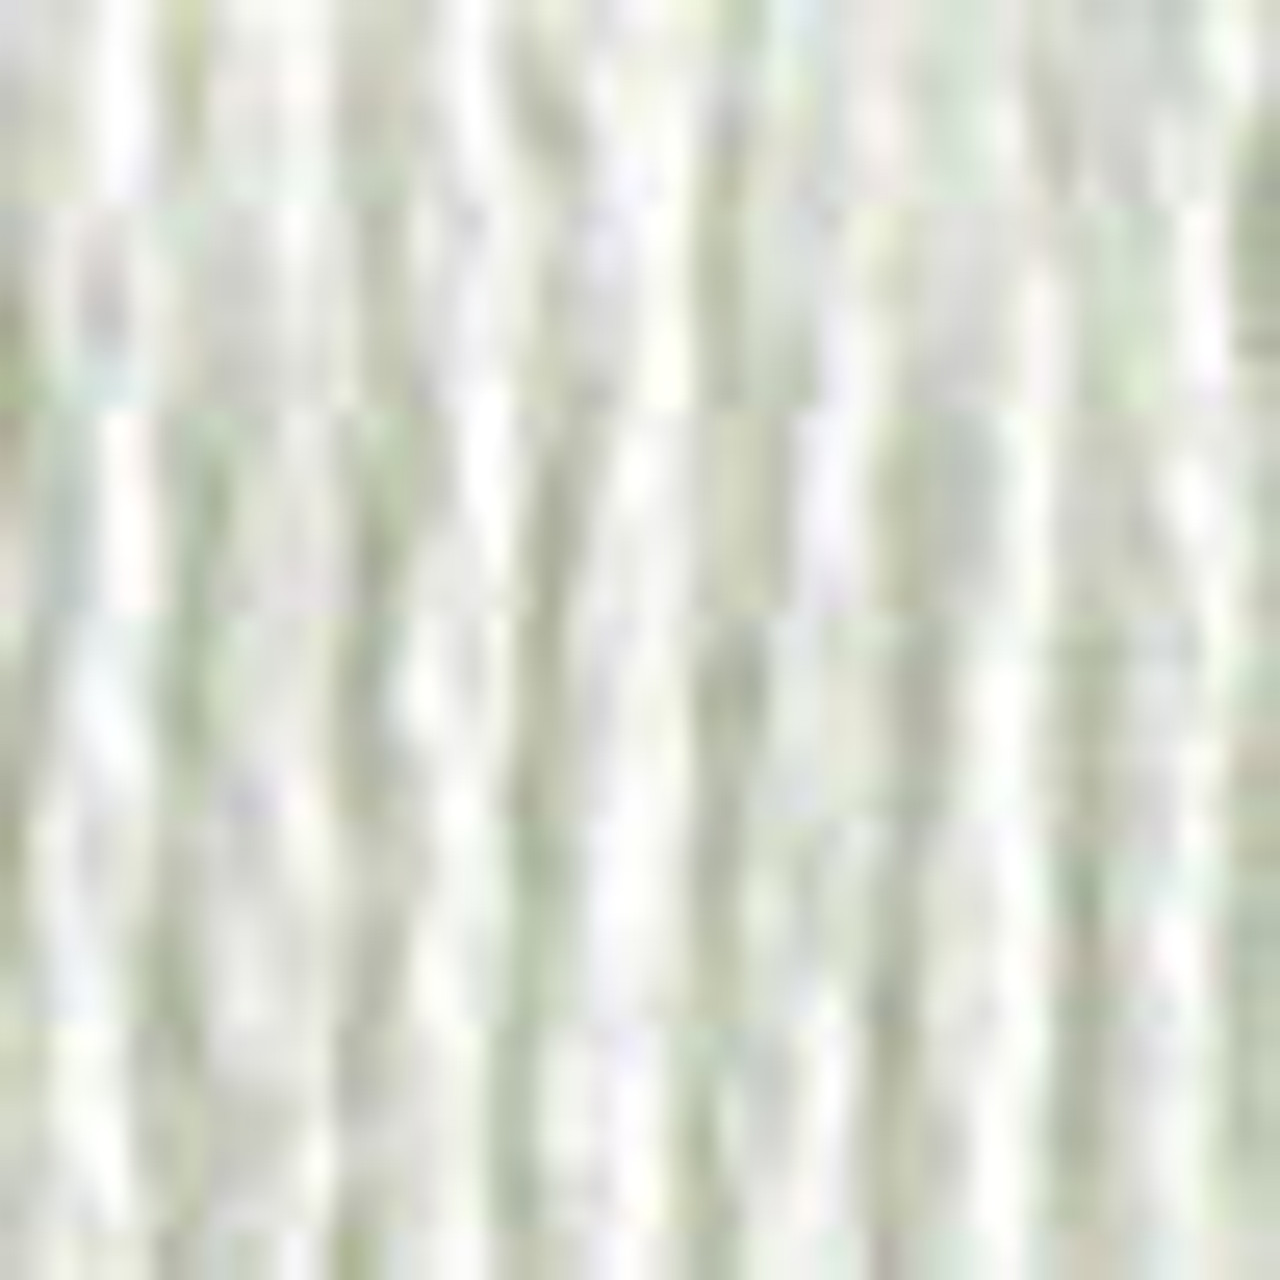 DMC # 3865 Winter White Floss / Thread